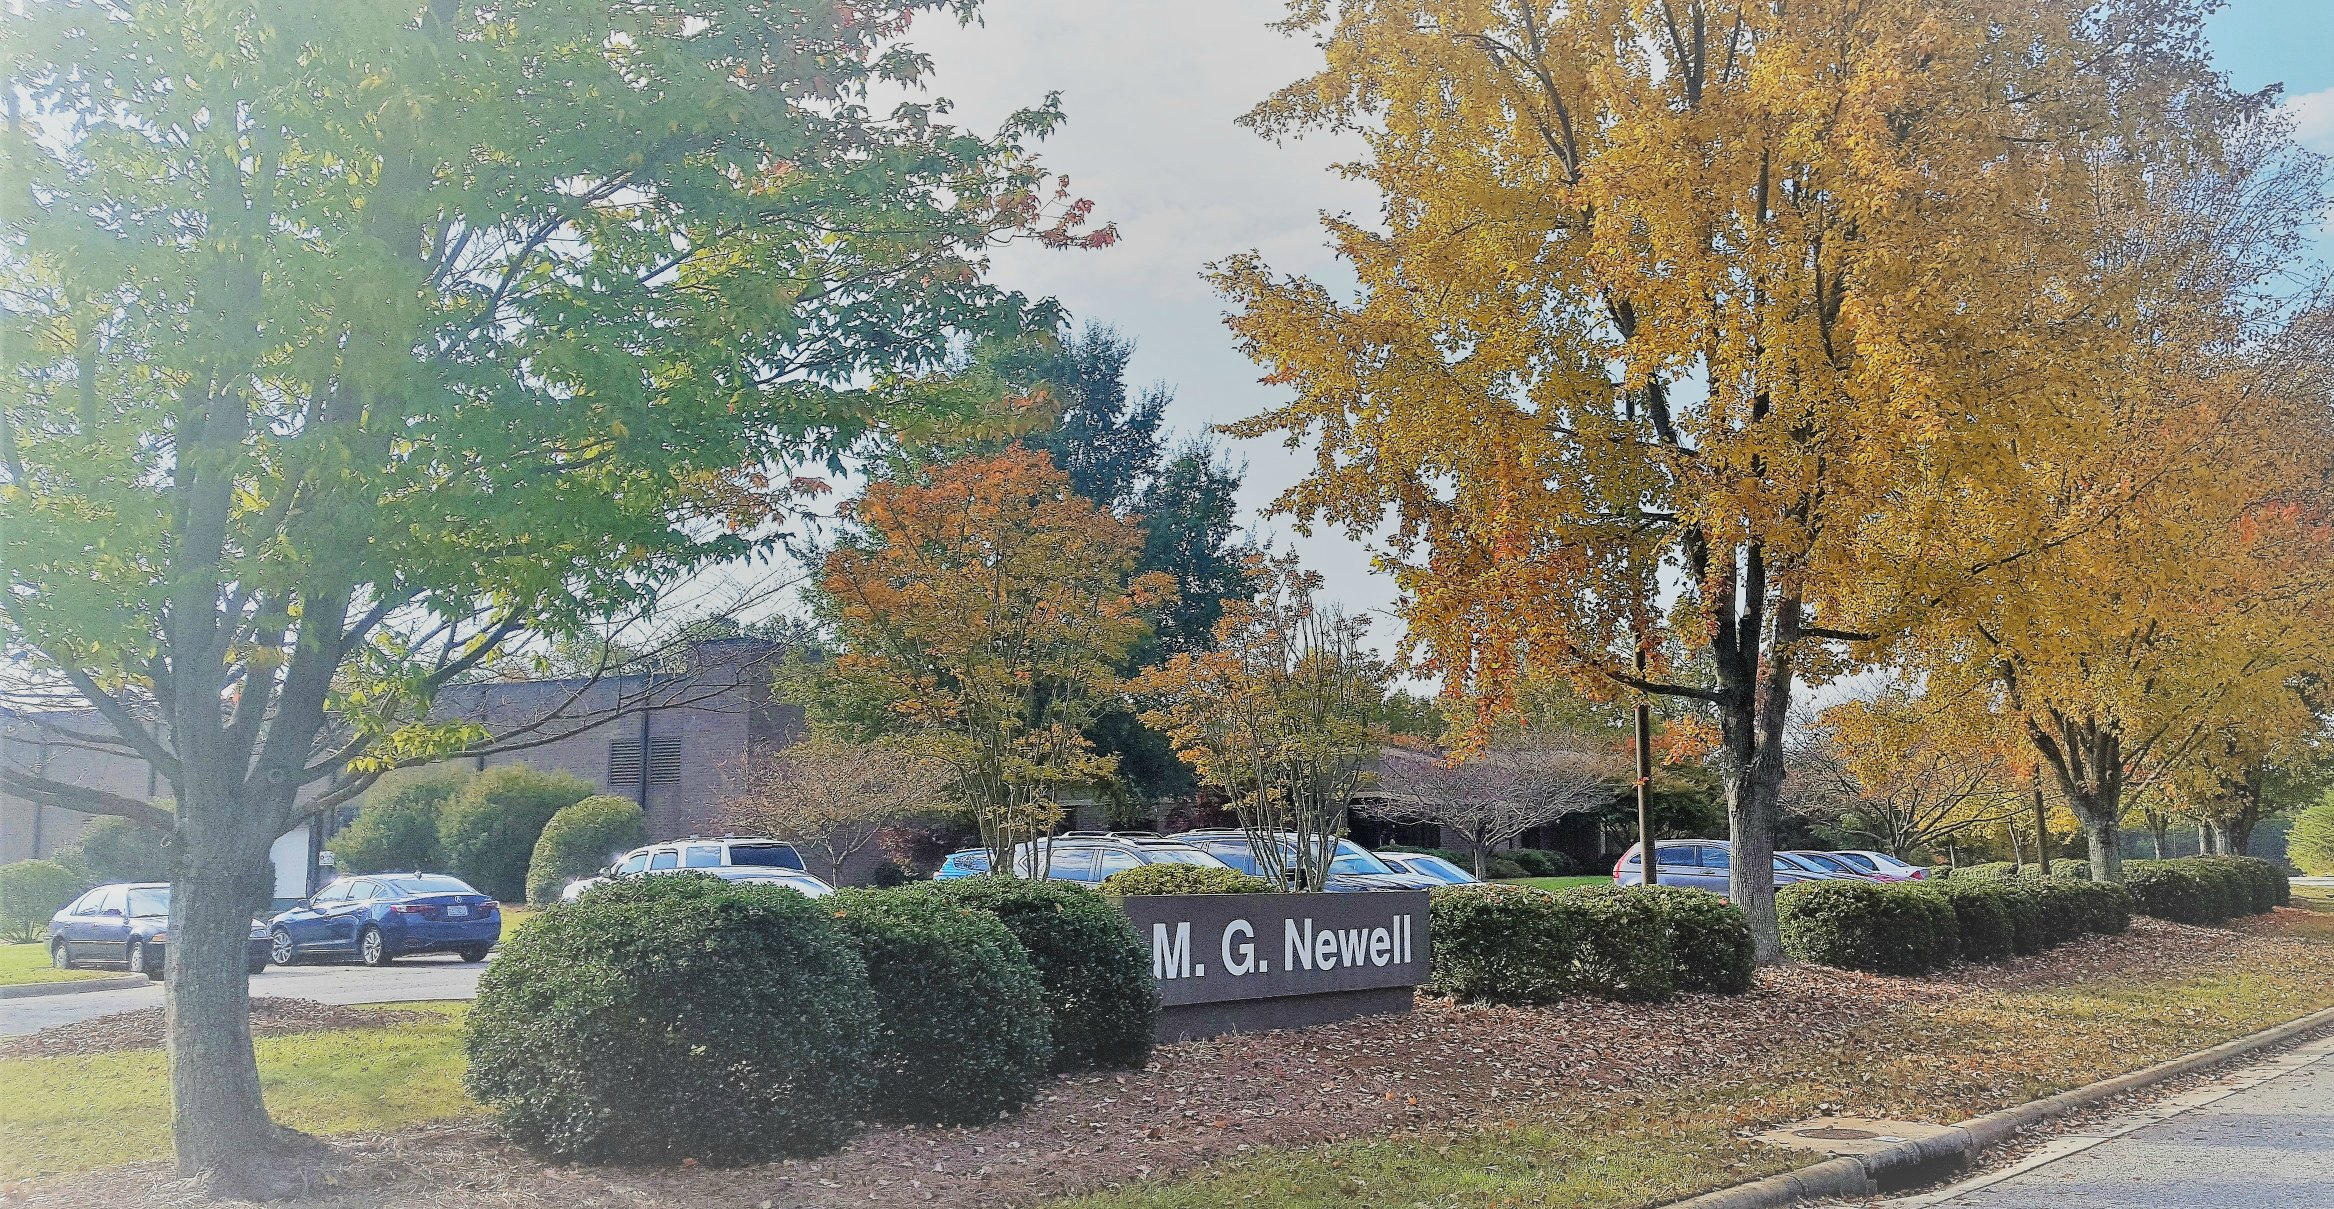 M.G. Newell building